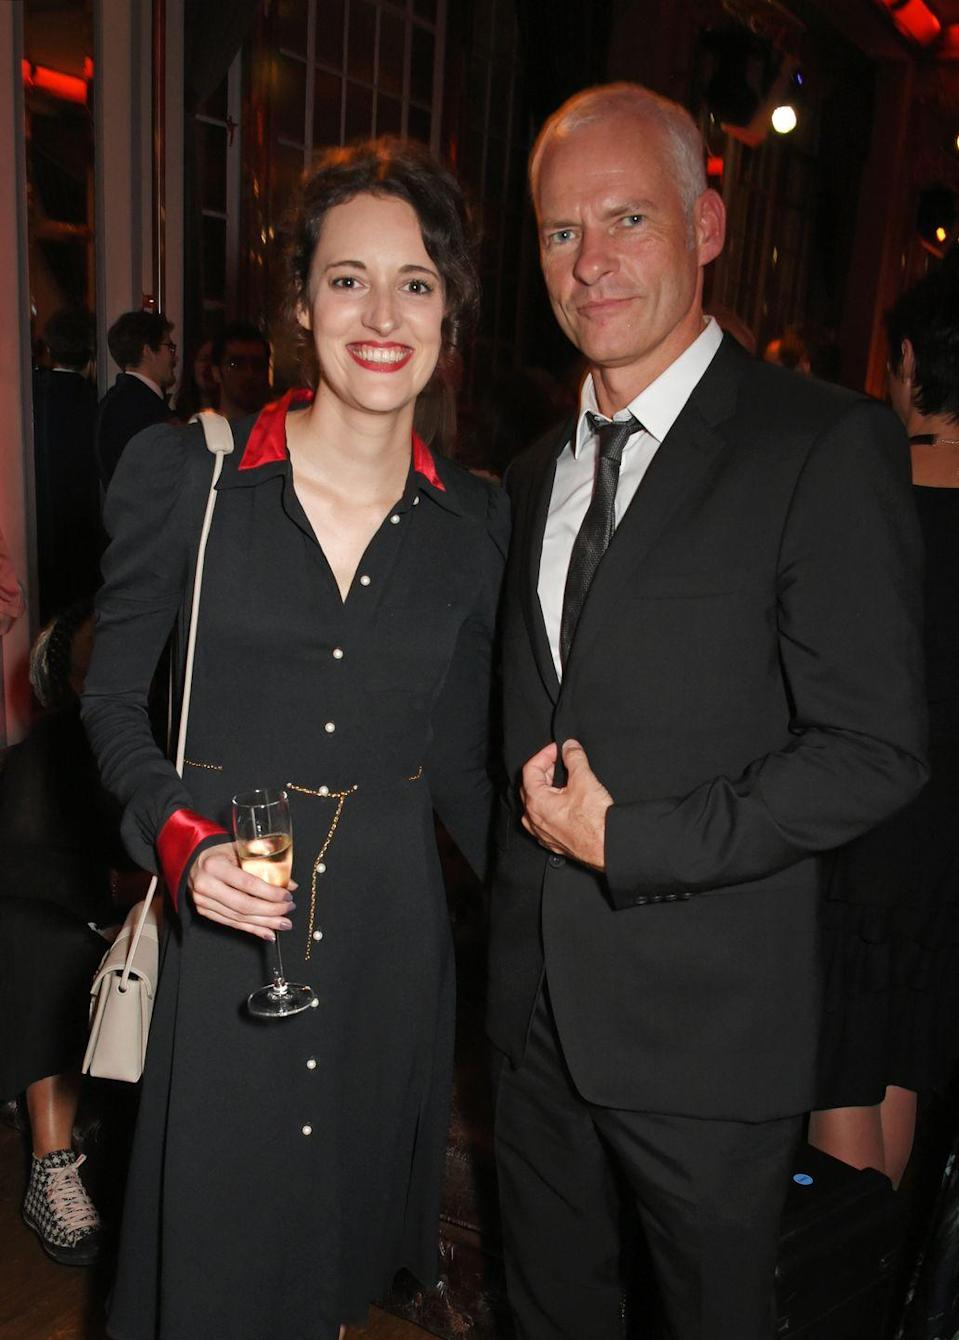 "<p>For those hoping for a real-life romance between Fleabag and the Hot Priest, no such luck. Waller-Bridge has been quietly dating <em>Three Billboards Outside Ebbing, Missouri </em>filmmaker McDonagh <a href=""https://www.elle.com/culture/celebrities/a29181228/who-is-martin-mcdonagh-phoebe-waller-bridge-boyfriend/"" rel=""nofollow noopener"" target=""_blank"" data-ylk=""slk:for about two years"" class=""link rapid-noclick-resp"">for about two years</a>. The Emmy winner has evaded questions about their relationship in interviews, telling <em><a href=""https://www.vogue.com/article/phoebe-waller-bridge-cover-december-2019"" rel=""nofollow noopener"" target=""_blank"" data-ylk=""slk:Vogue"" class=""link rapid-noclick-resp"">Vogue</a> </em>in late 2019, ""I'm much braver in my writing life."" </p>"